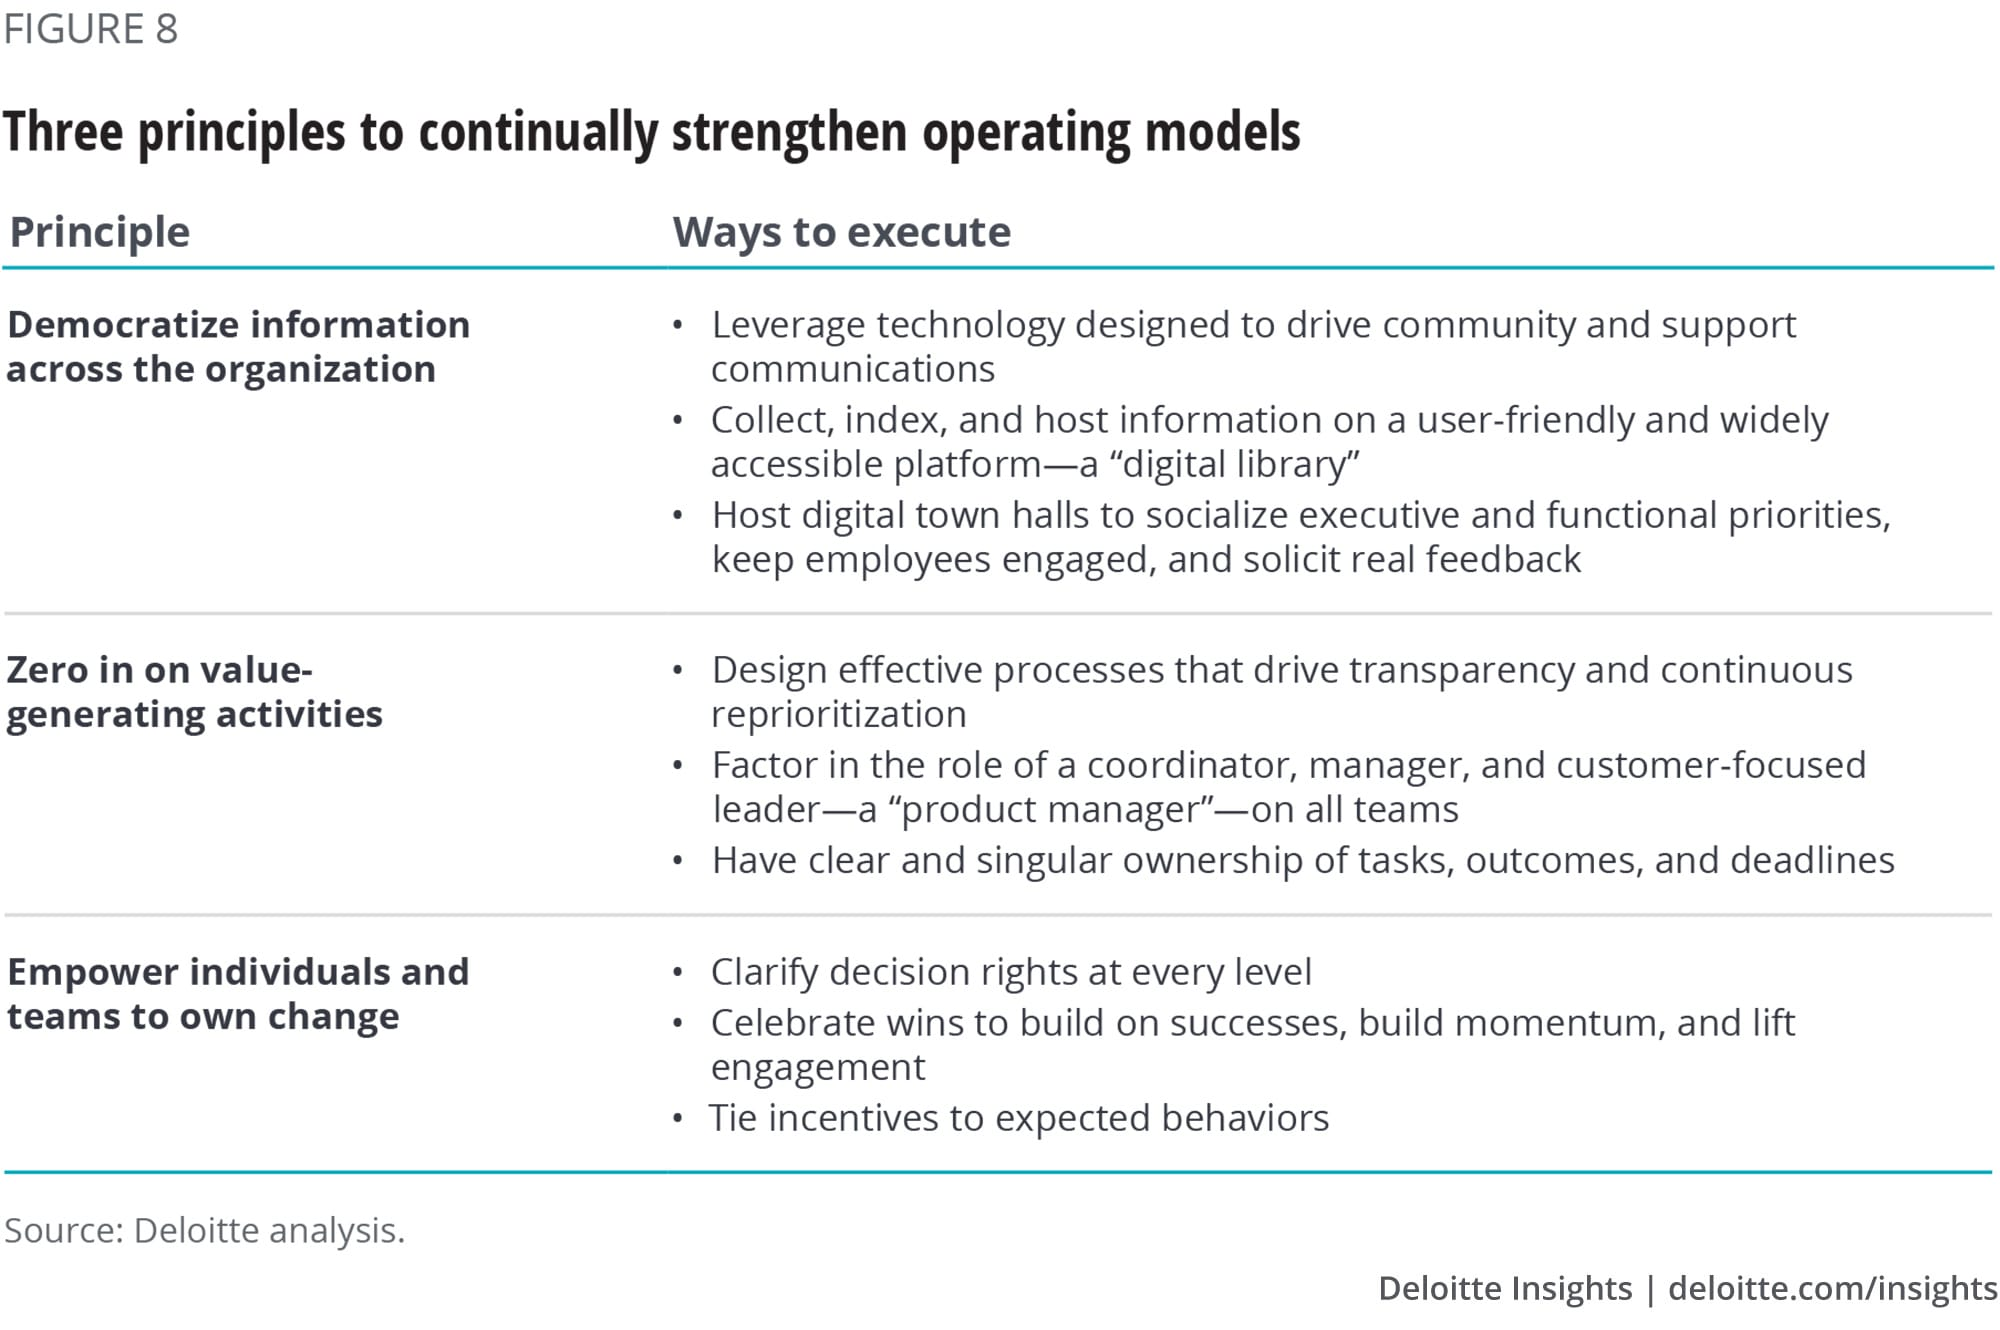 Three principles to continually strengthen operating models